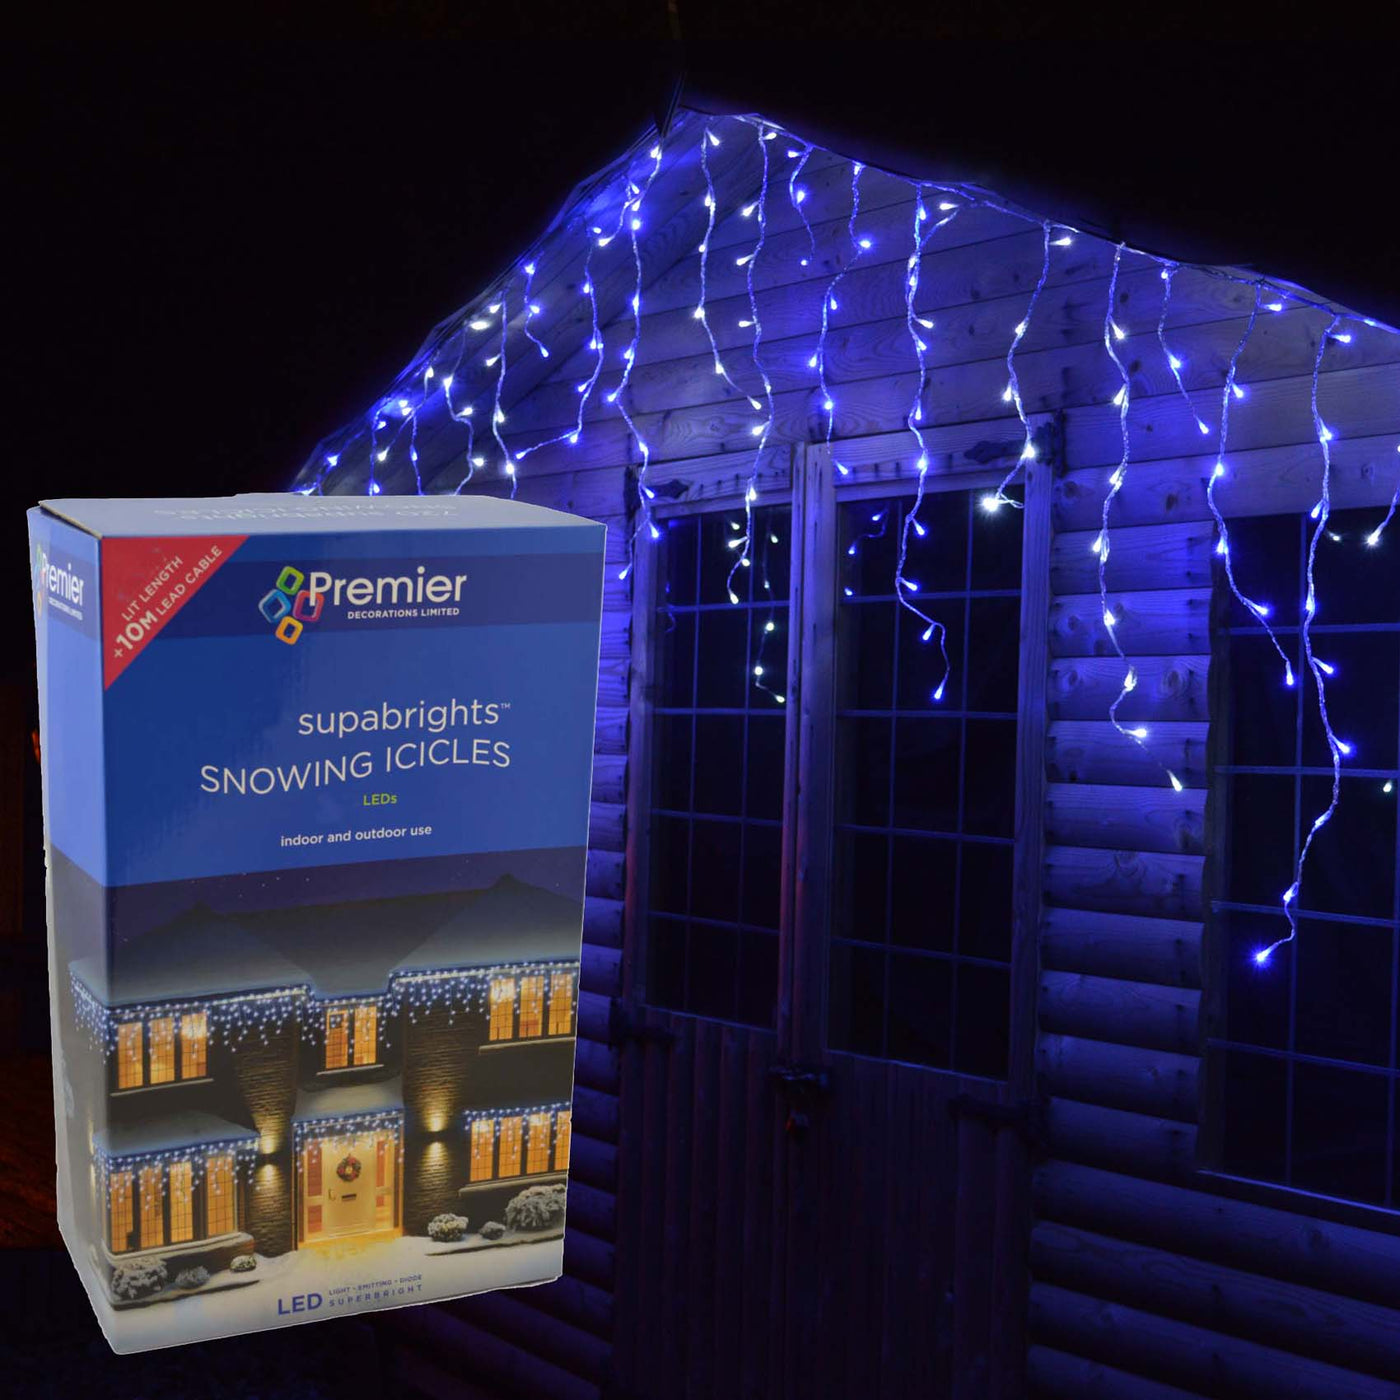 4 4m Premier 180 Led Outdoor Snowing Icicle Christmas Lights Blue